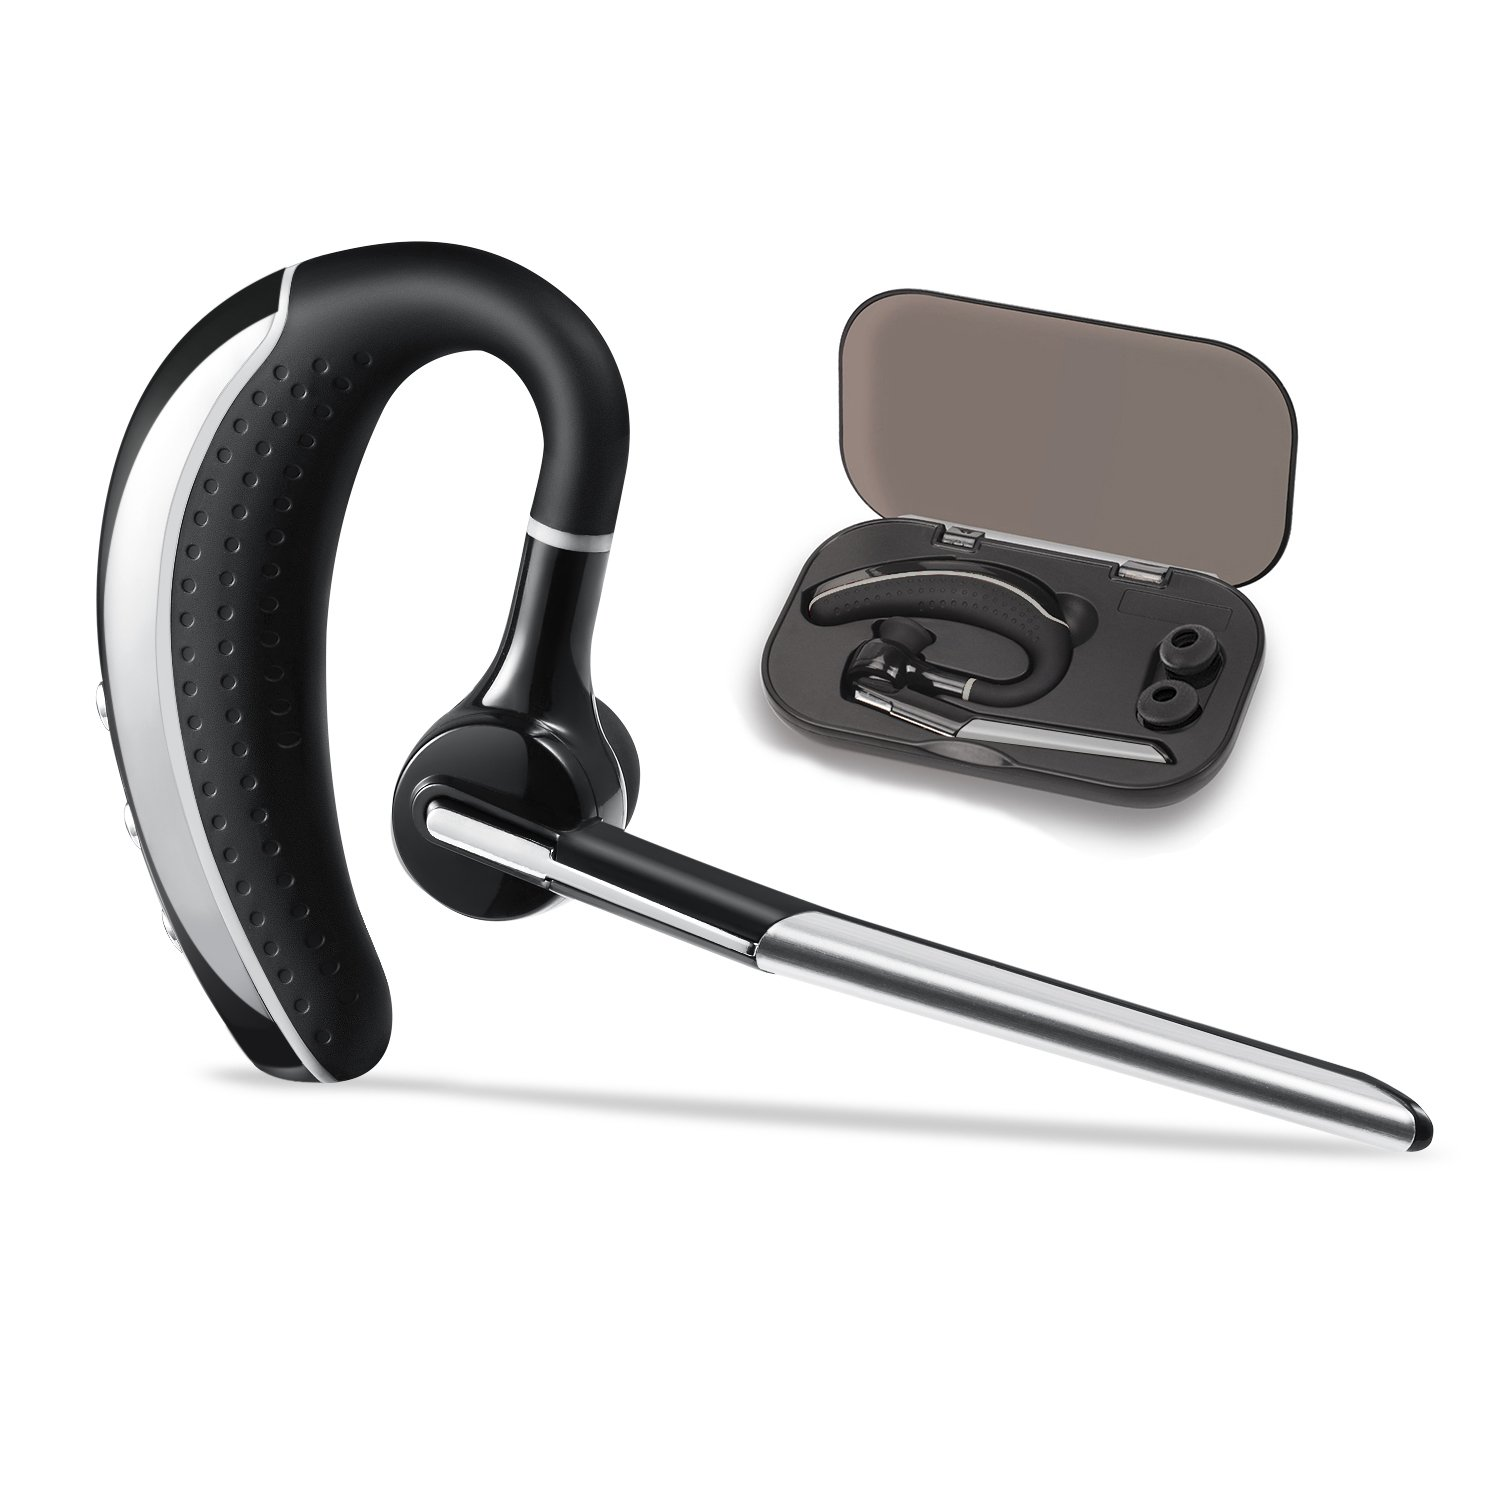 Bluetooth headset, Hands free Wireless Bluetooth Earpiece V4.1 with 6.5-Hr Talktime and Noise Cancellation Mic for iPhone and Android cell phones for Driving/Business/Office/Workout